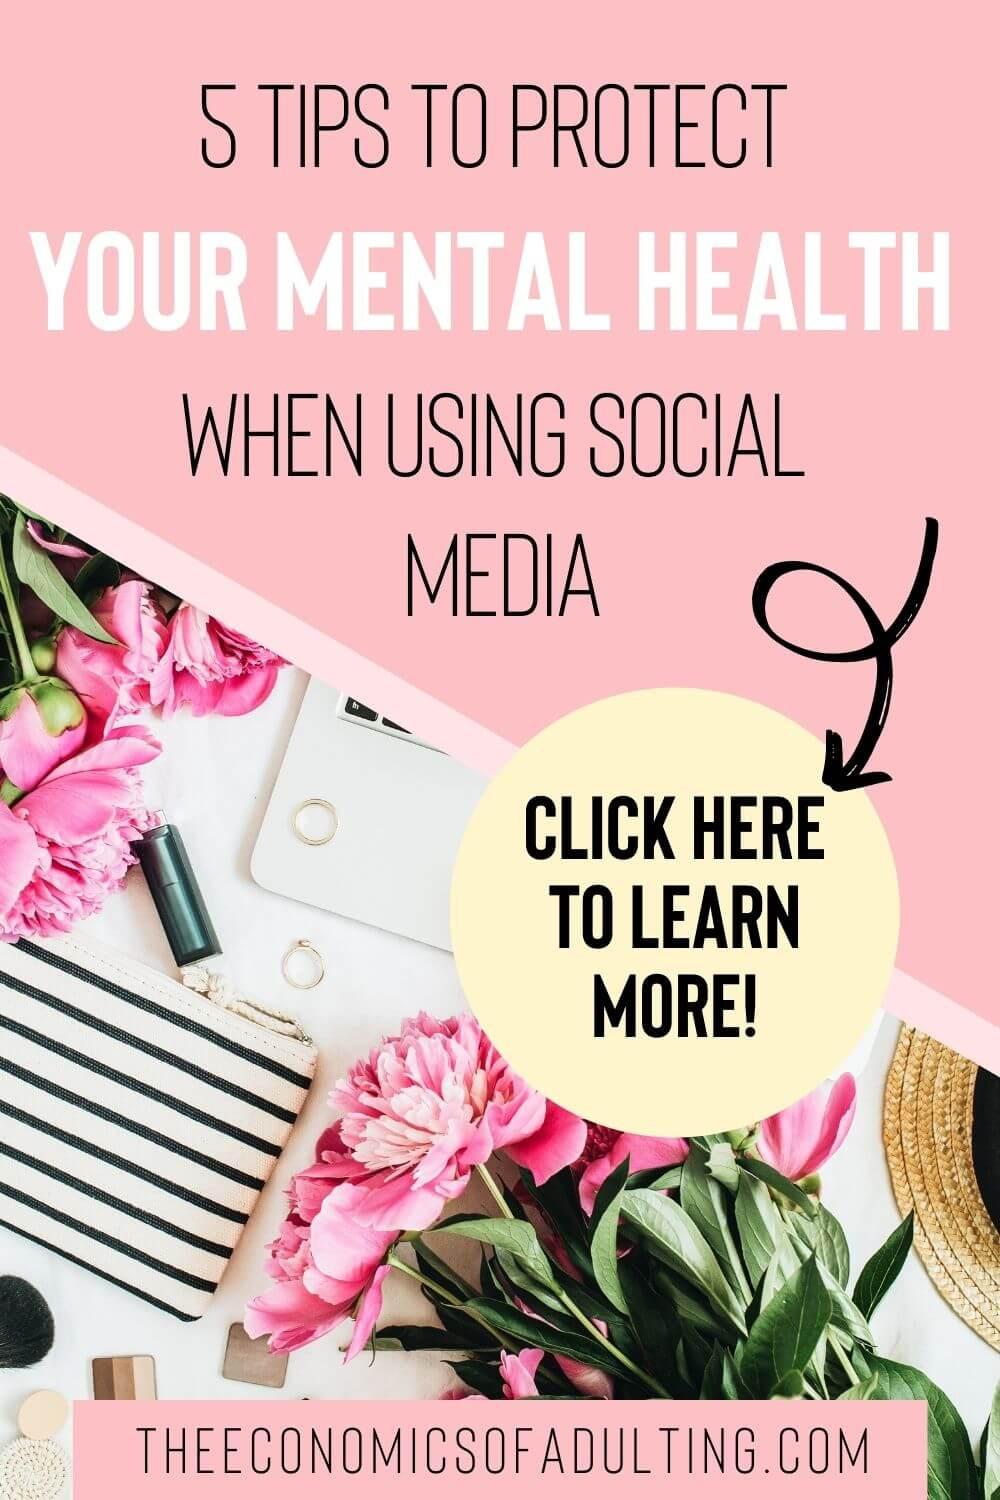 An image of flowers, a laptop, and accessories on a table, with the headline '5 Tips To Protect Your Mental Health When Using Social Media'